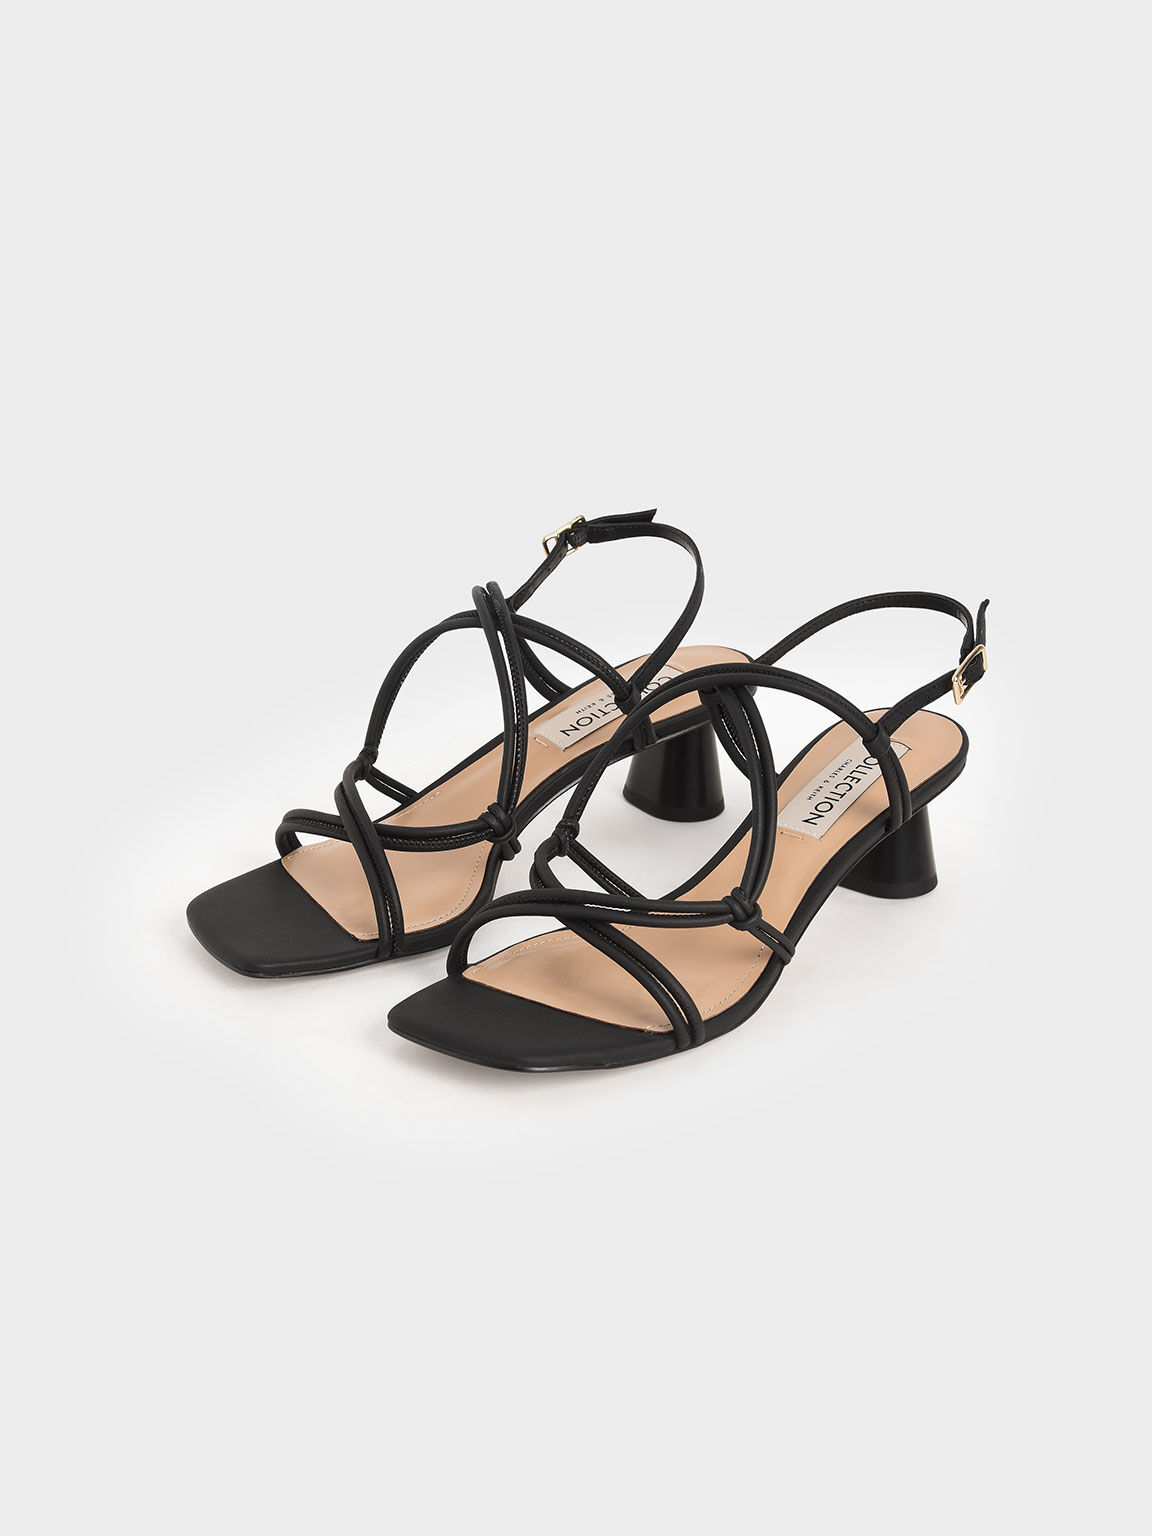 Leather Strappy Knotted Sandals, Black, hi-res